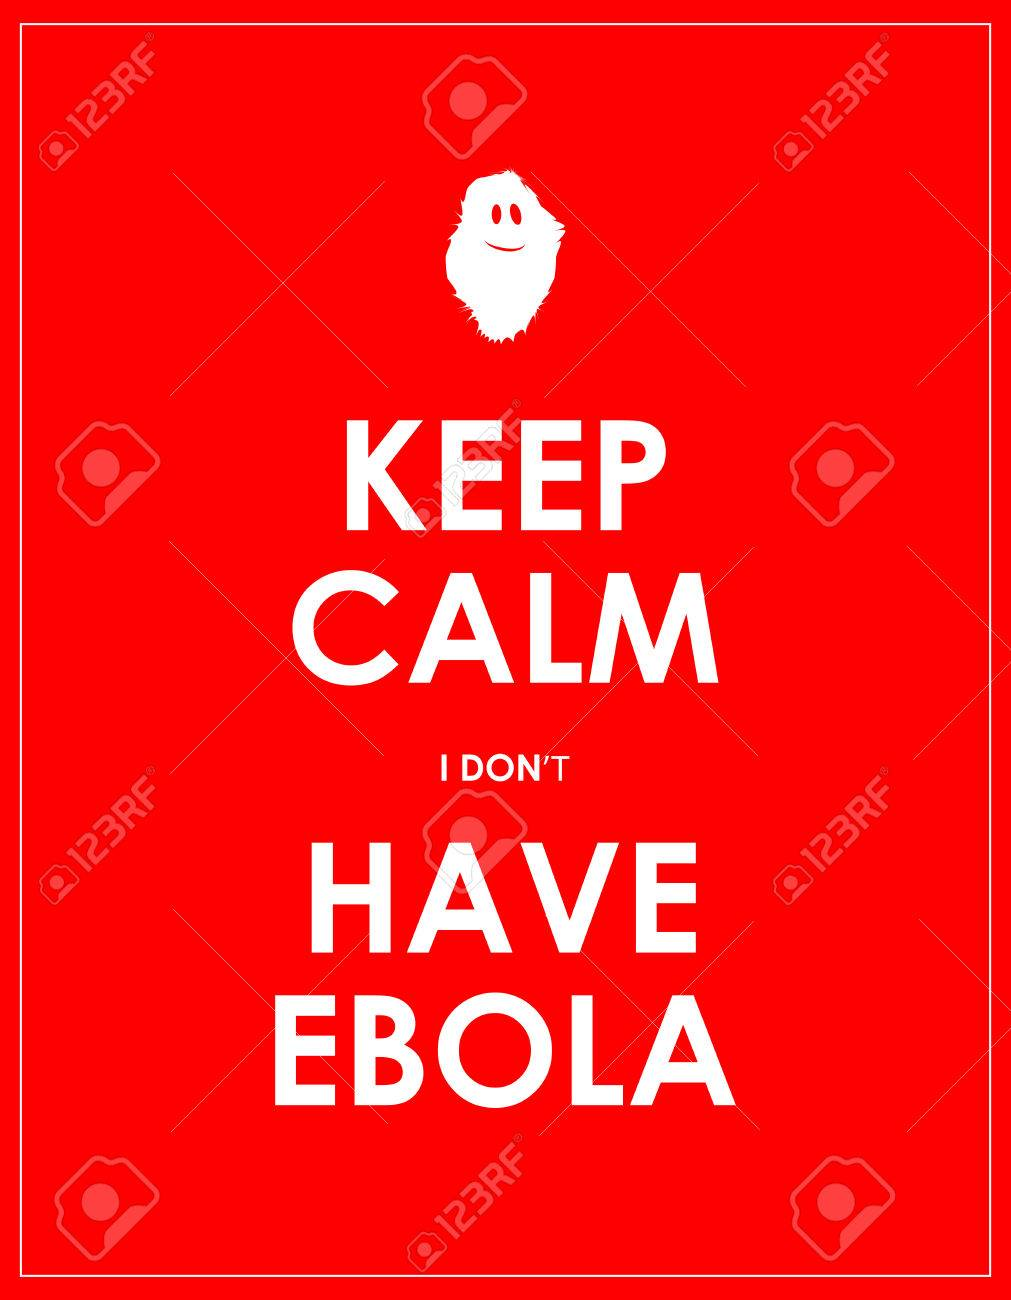 Keep Calm I Dont Have Ebola Background Royalty Cliparts 1011x1300